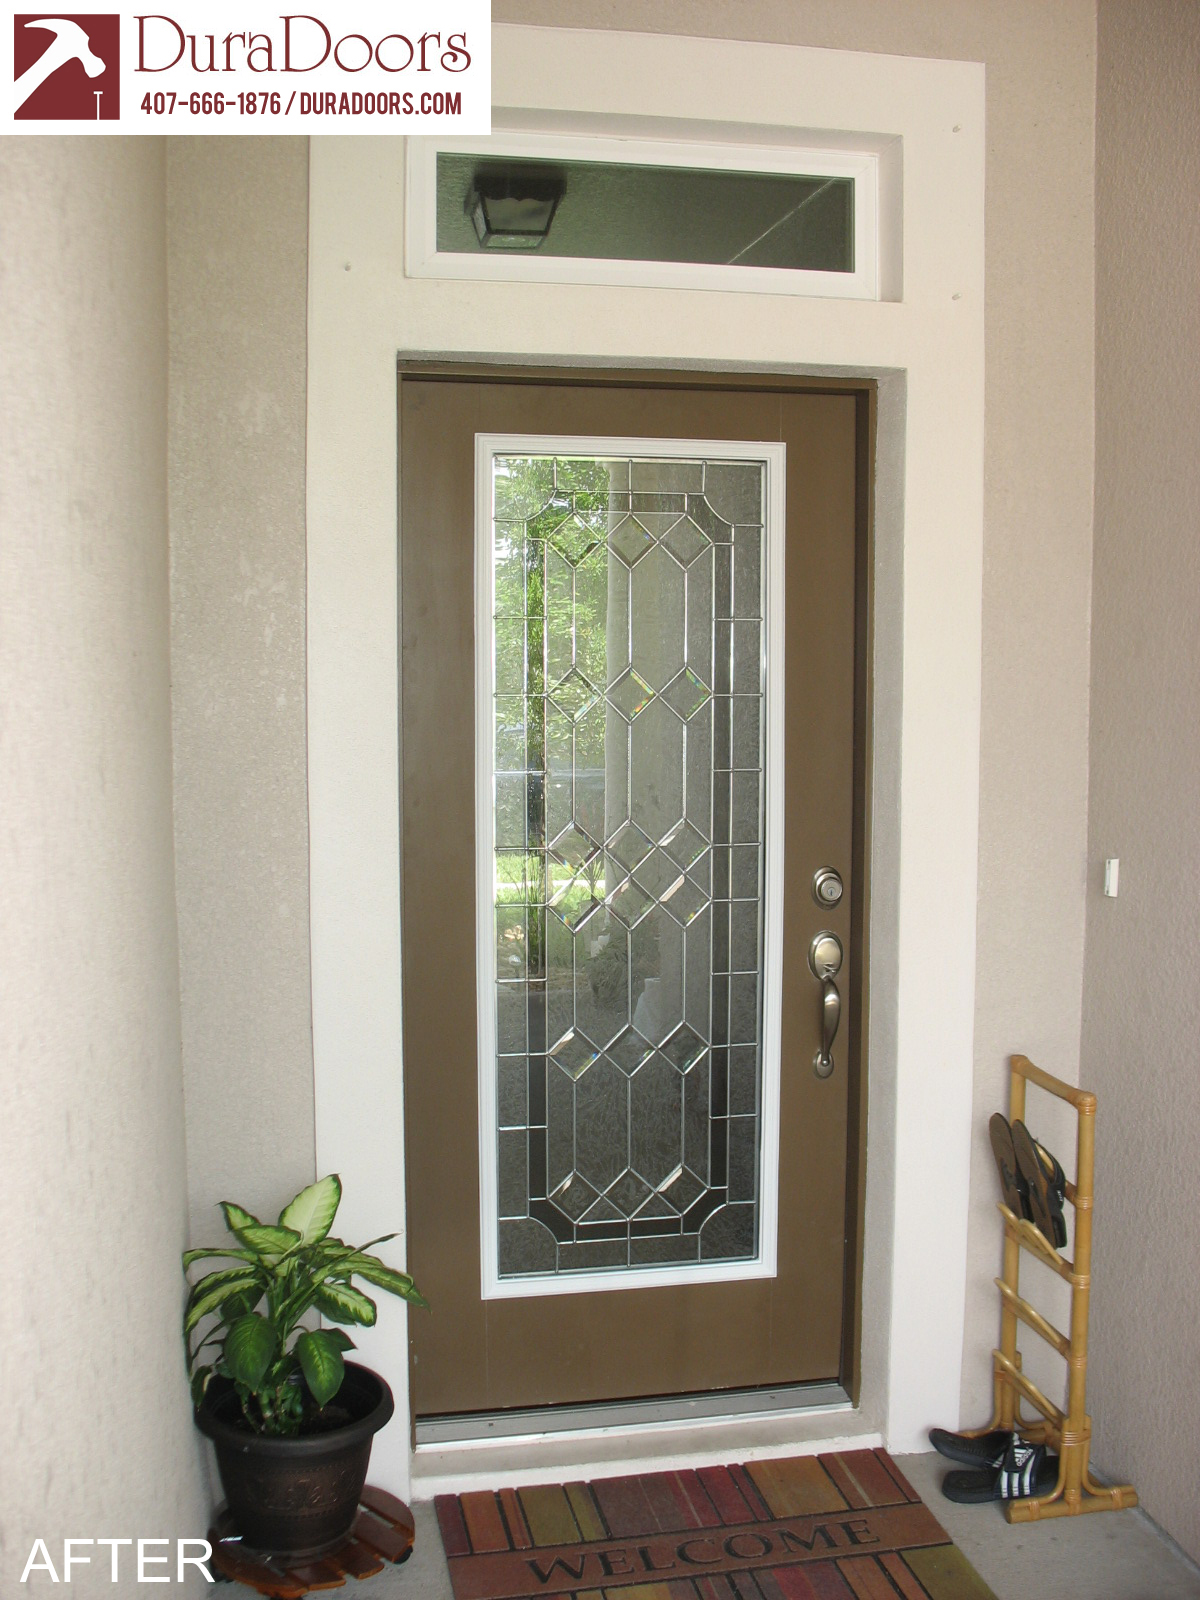 Door #1021. Majestic-after & Majestic Glass with Nickel Caming | DuraDoors